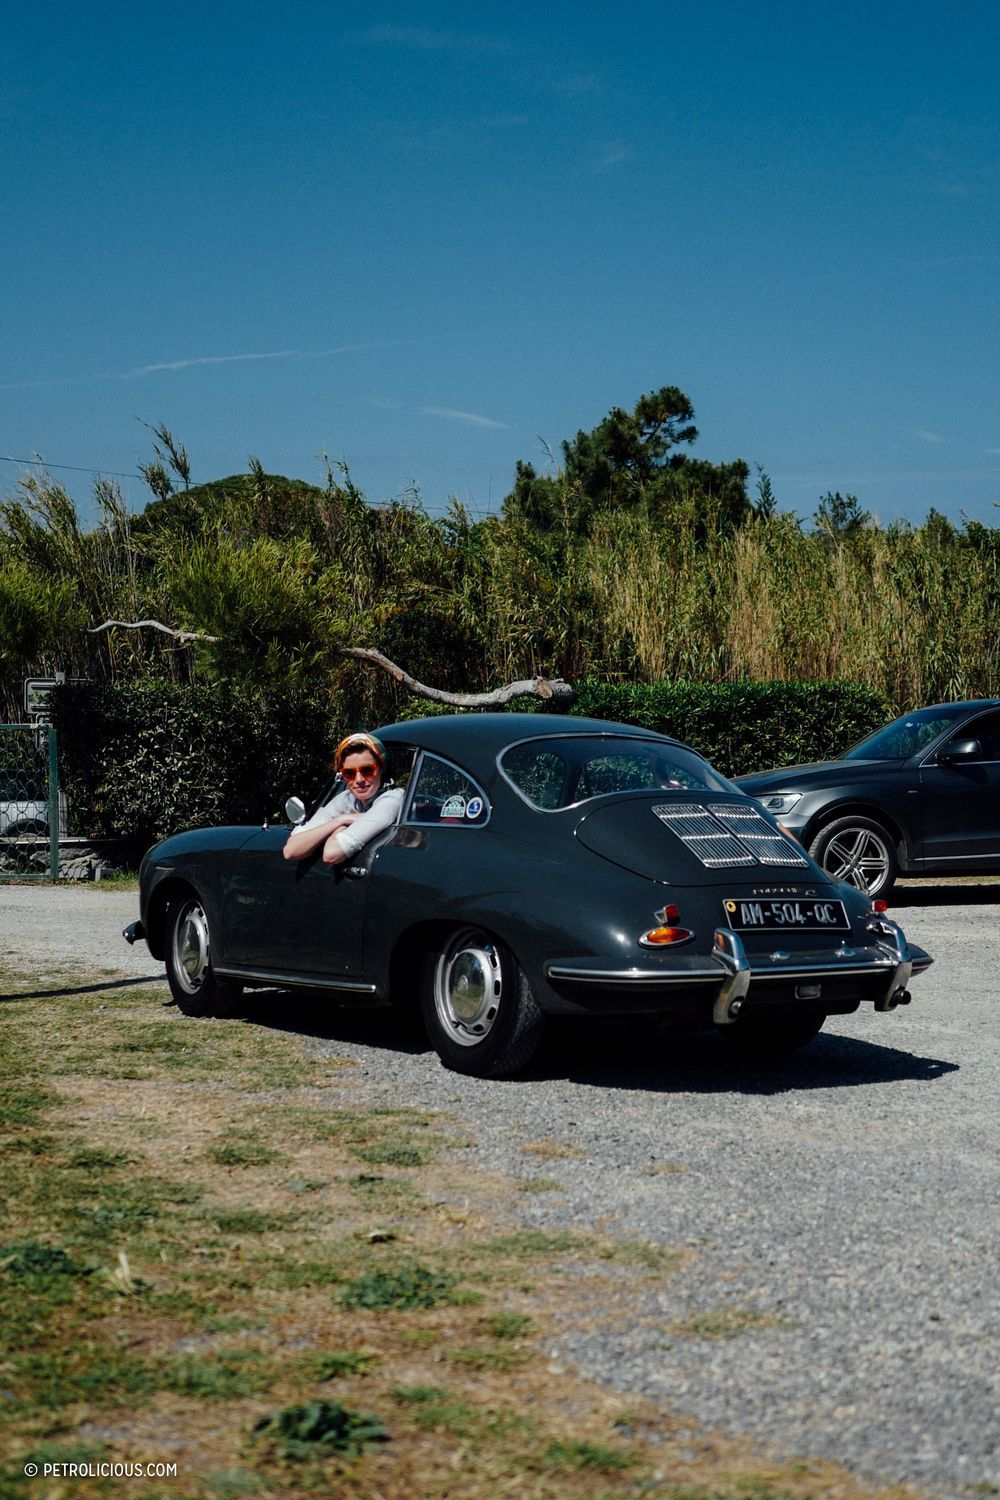 My First Classic Drive Was In A Porsche 356C - Petrolicious